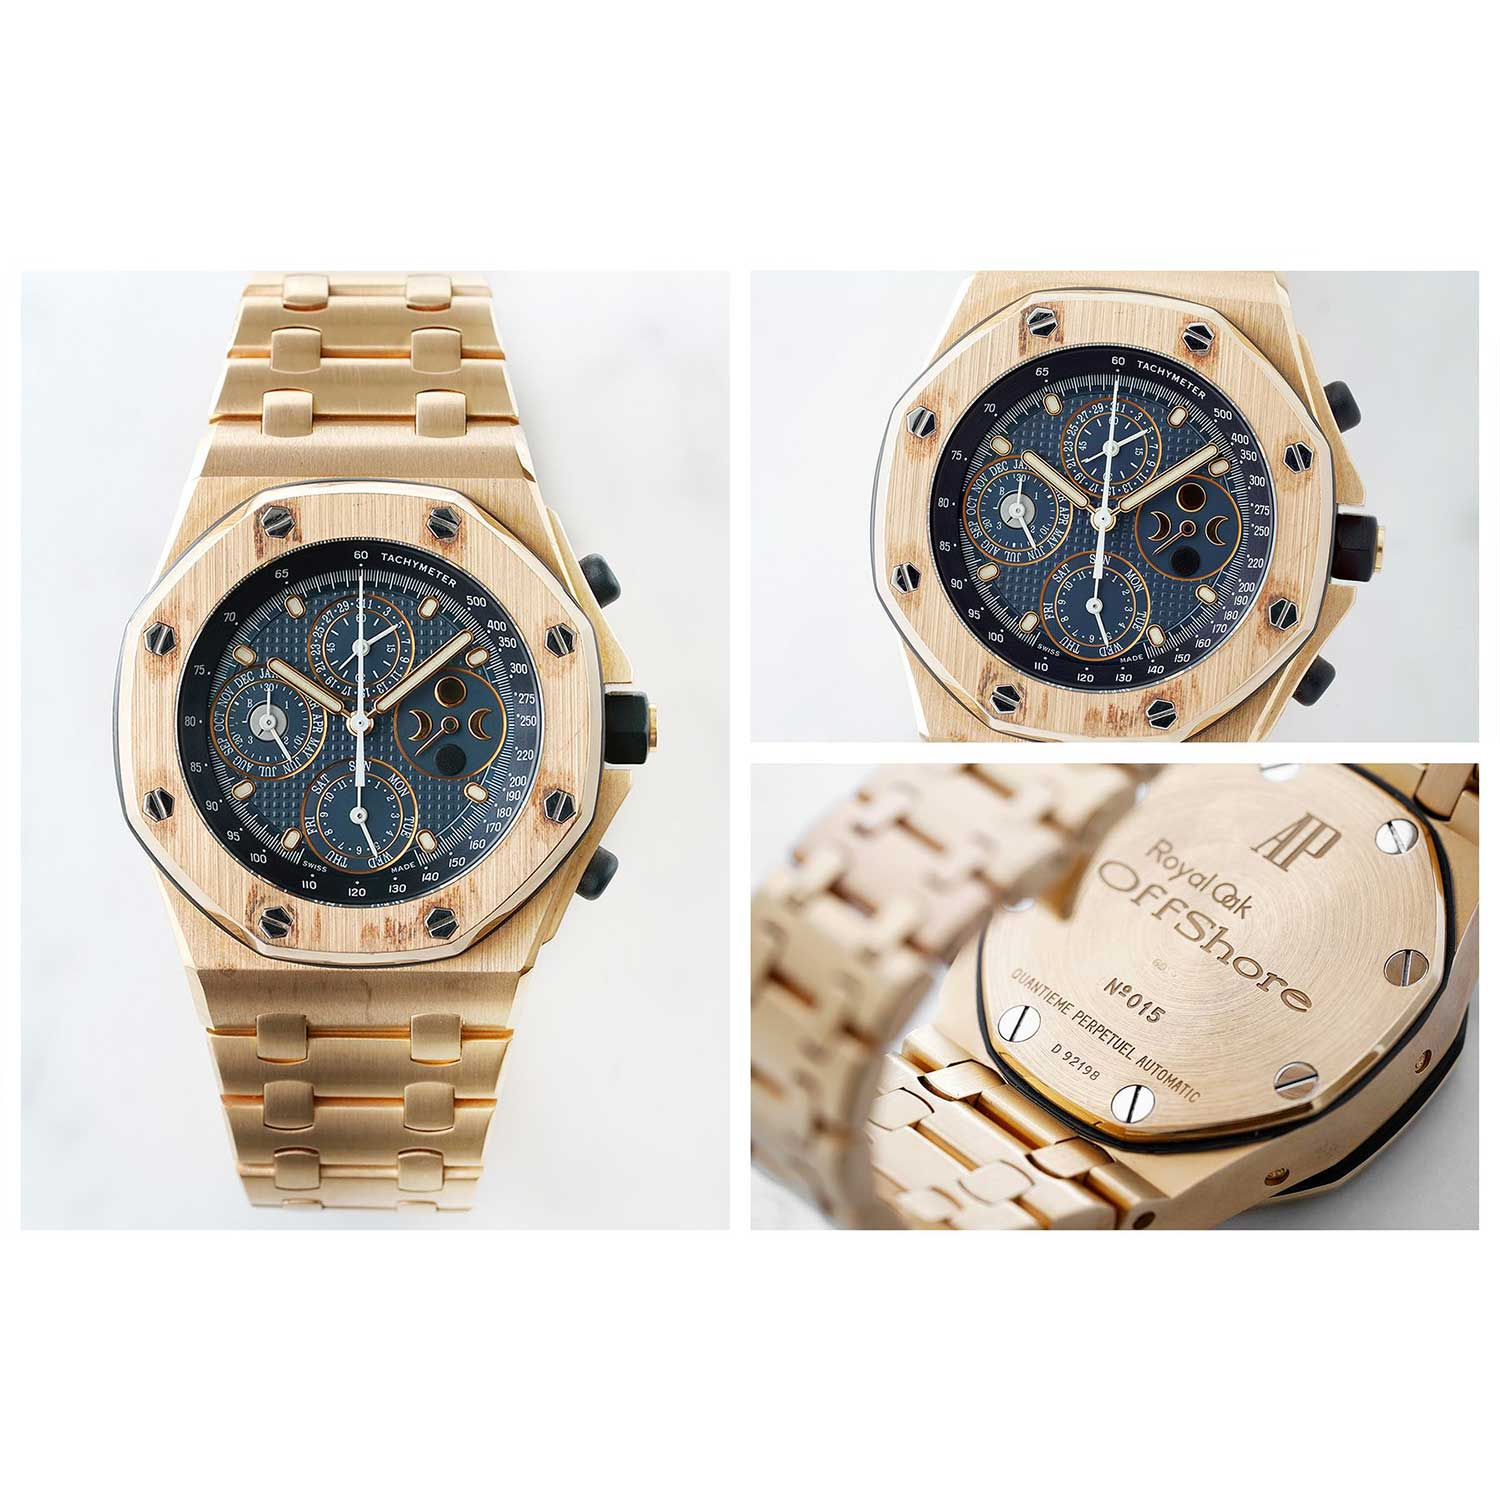 The 1999 Royal Oak Offshore Perpetual Calendar ref. 25854OR in rose gold with a blue dial (phillipswatches.com)